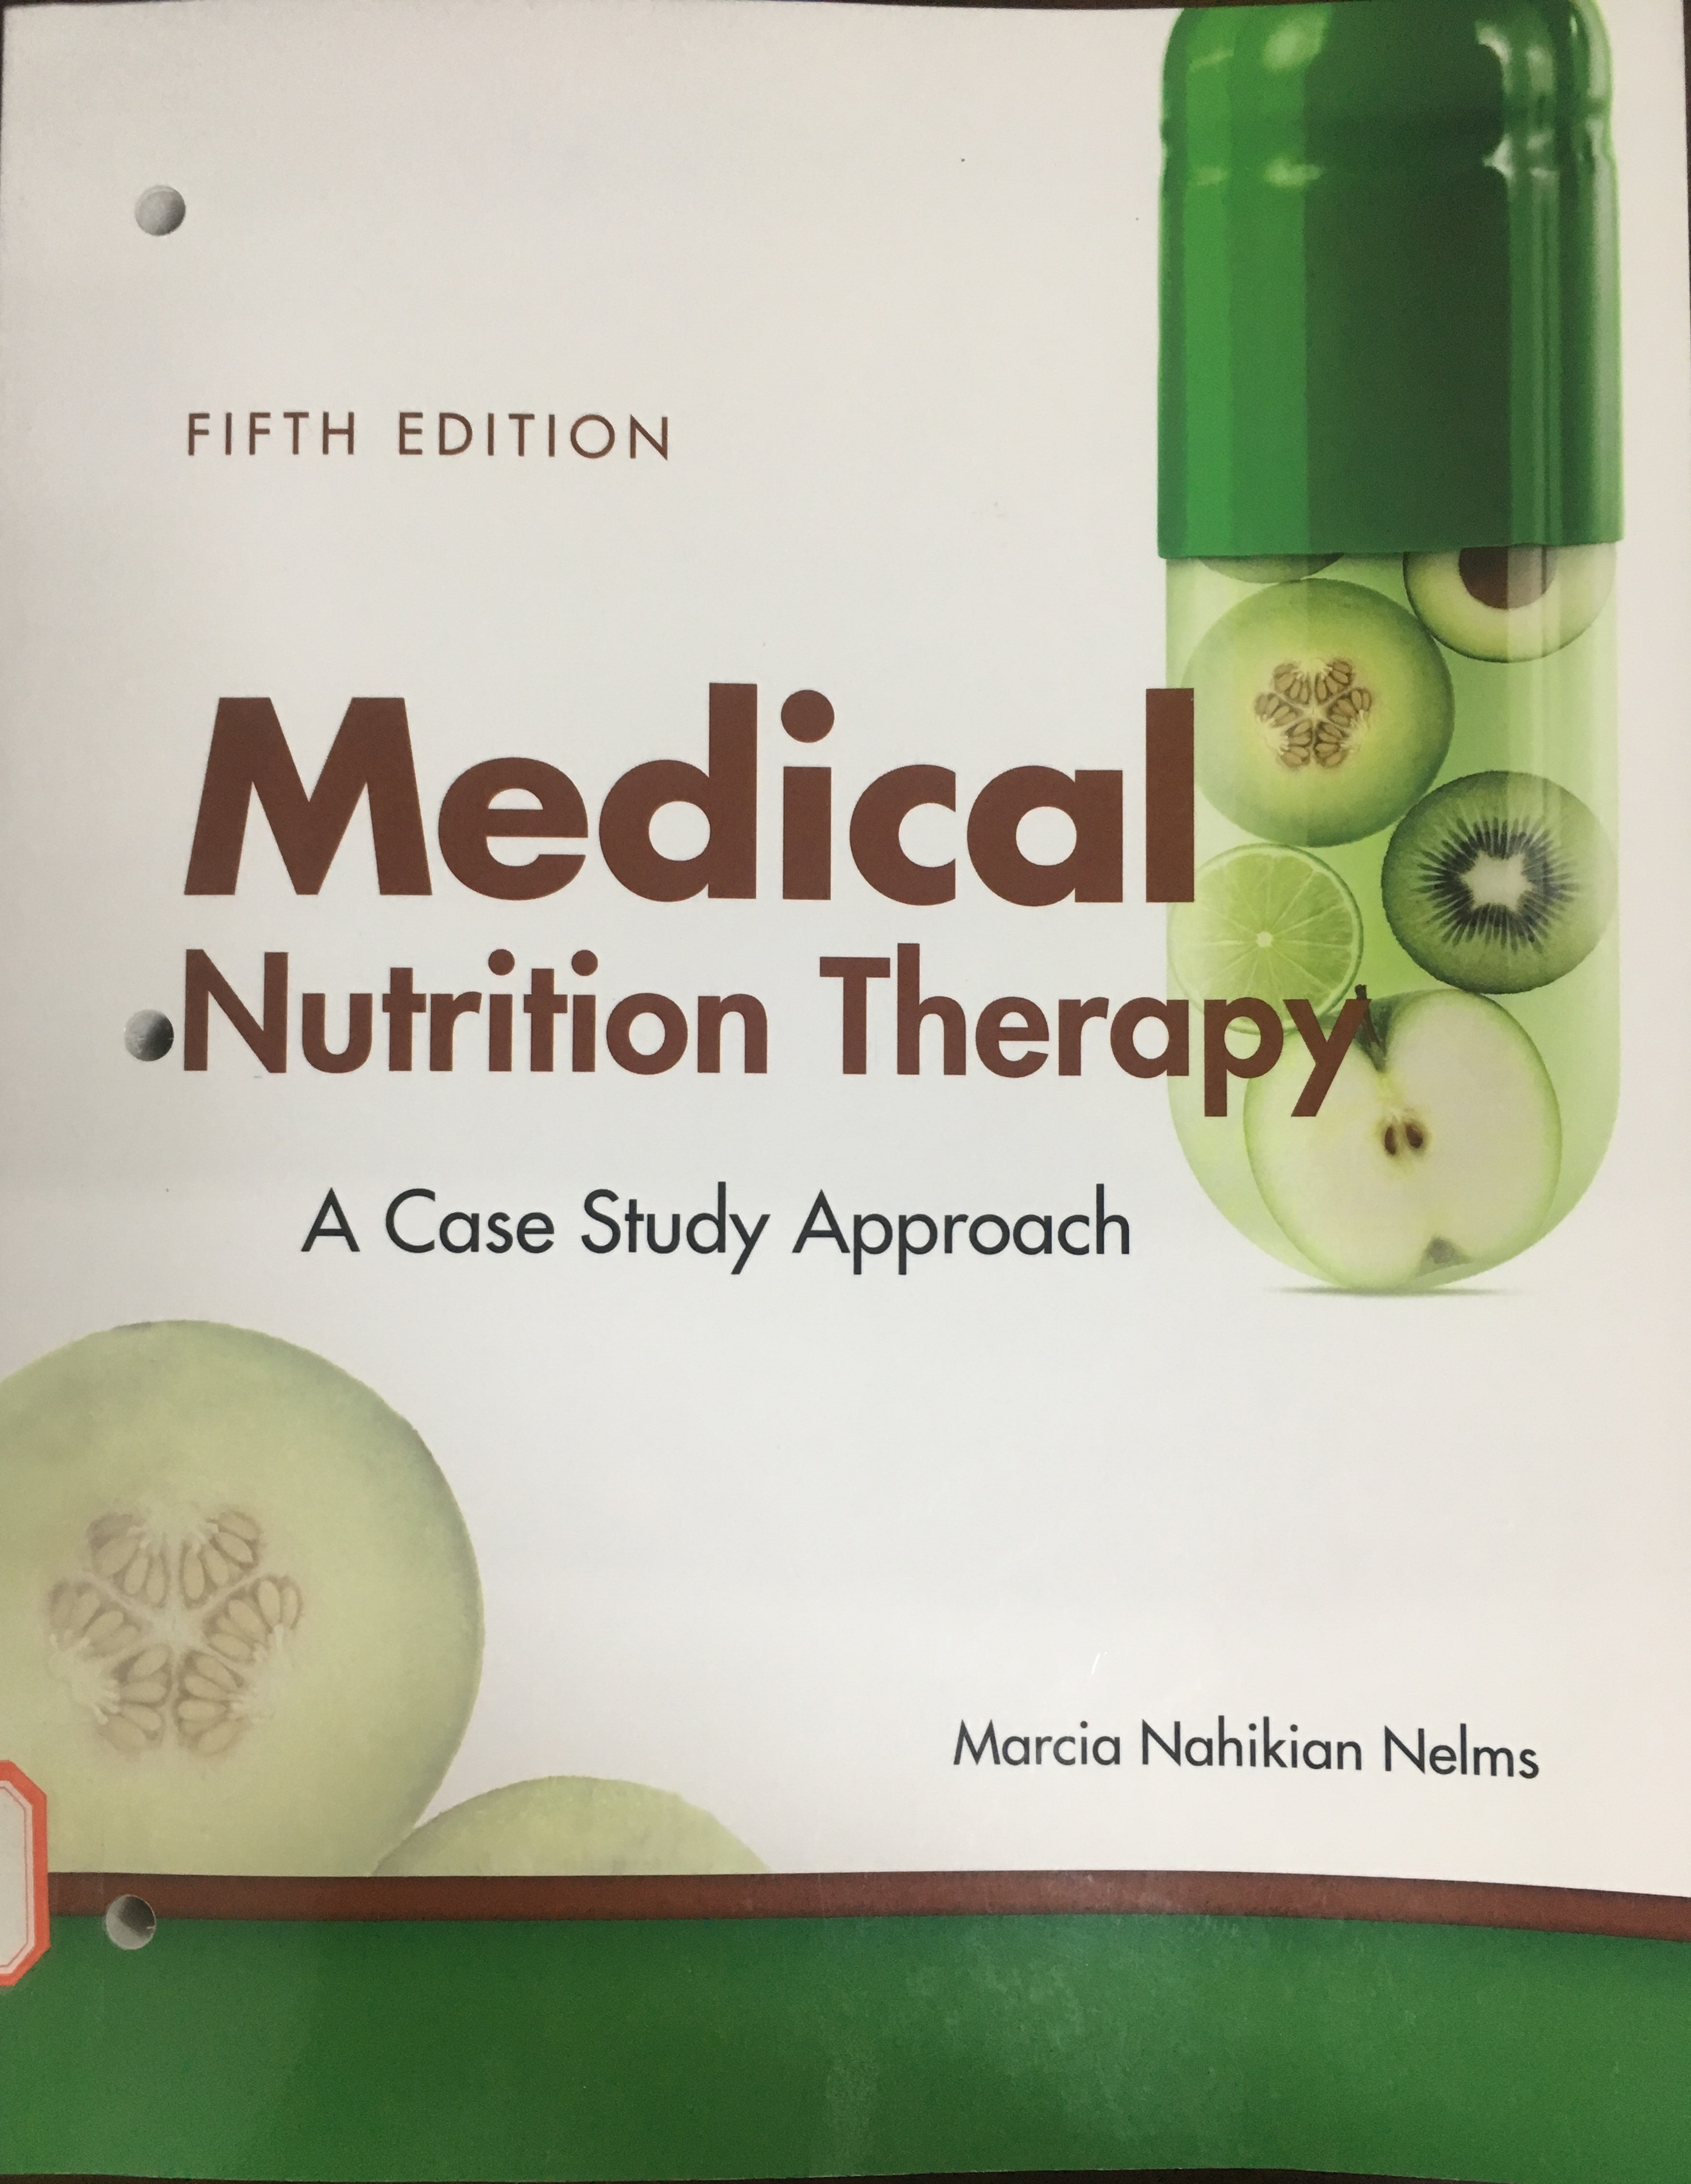 «Medical Nutrition Therapy: A Case Study Approach »